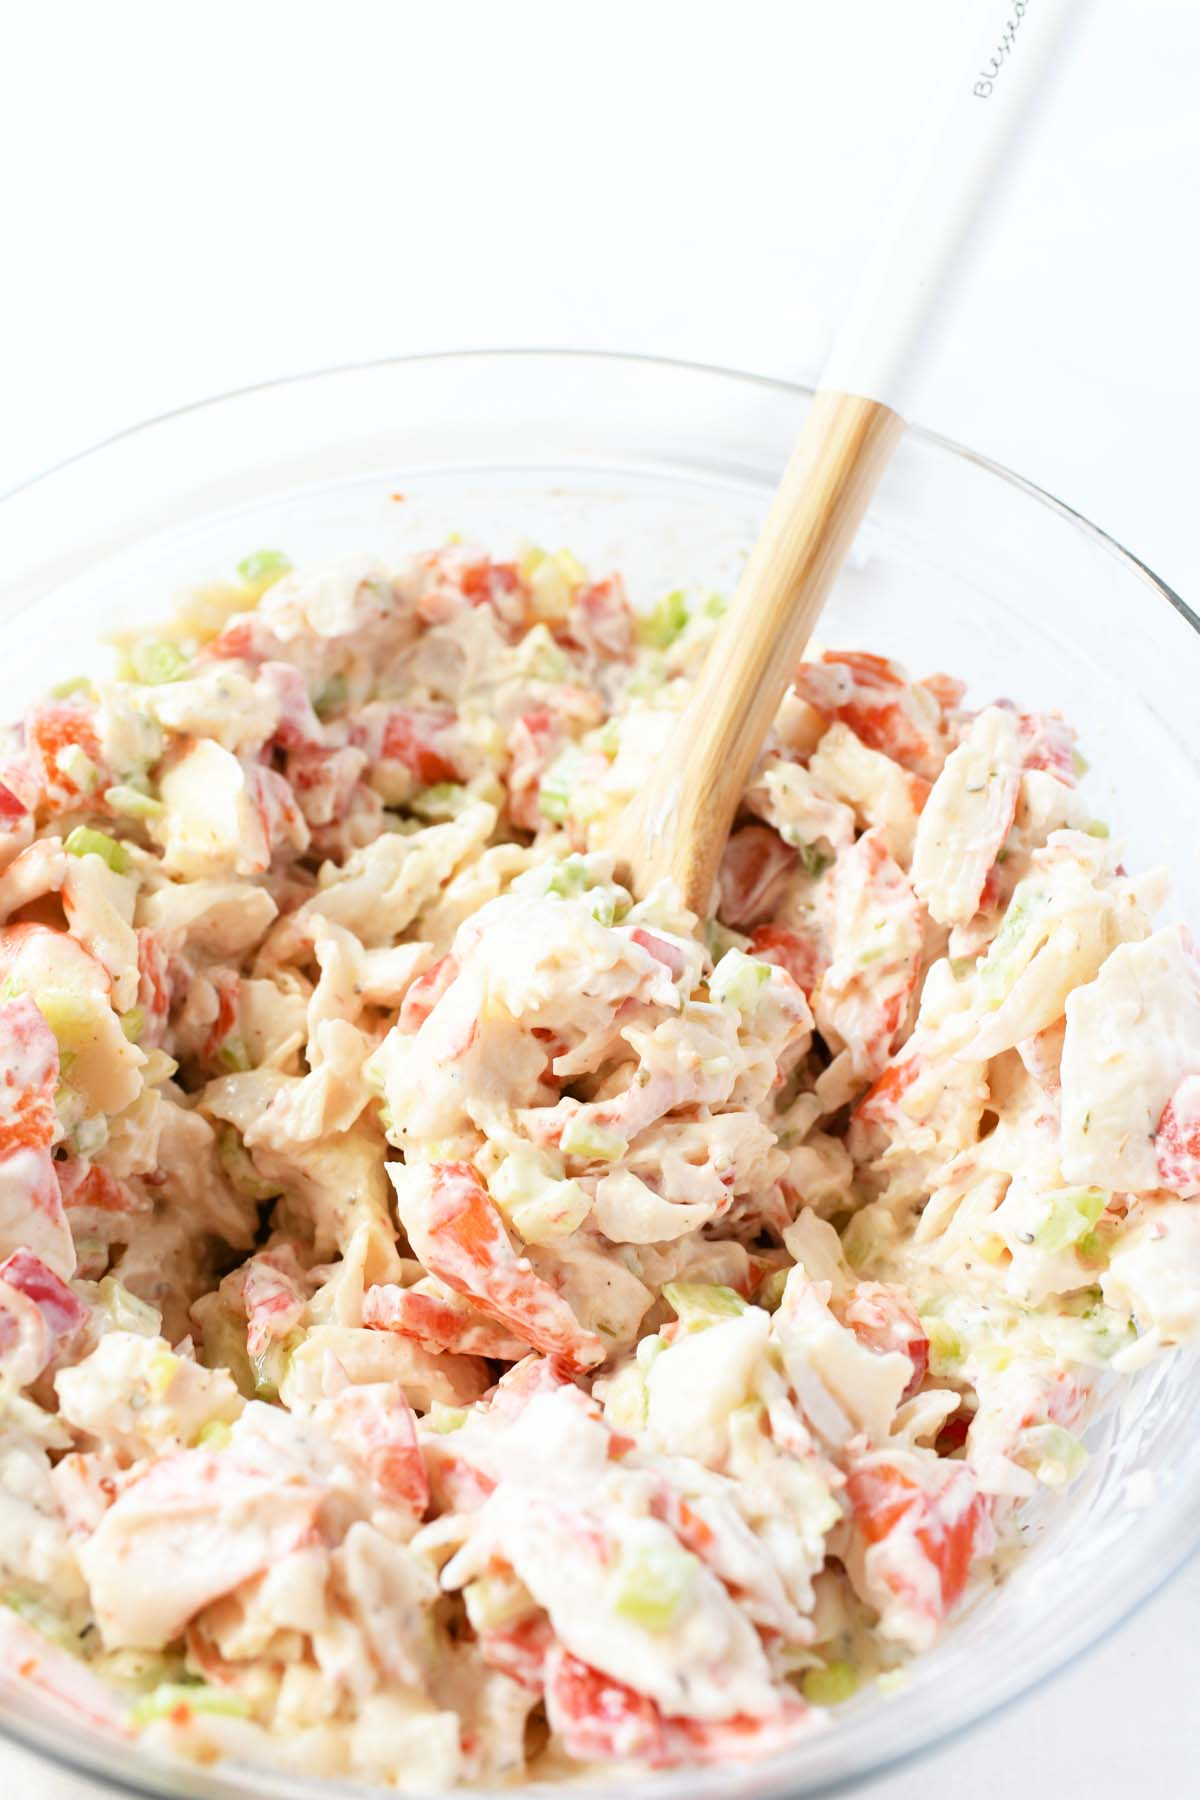 Chunky crab salad with a wooden spoon.